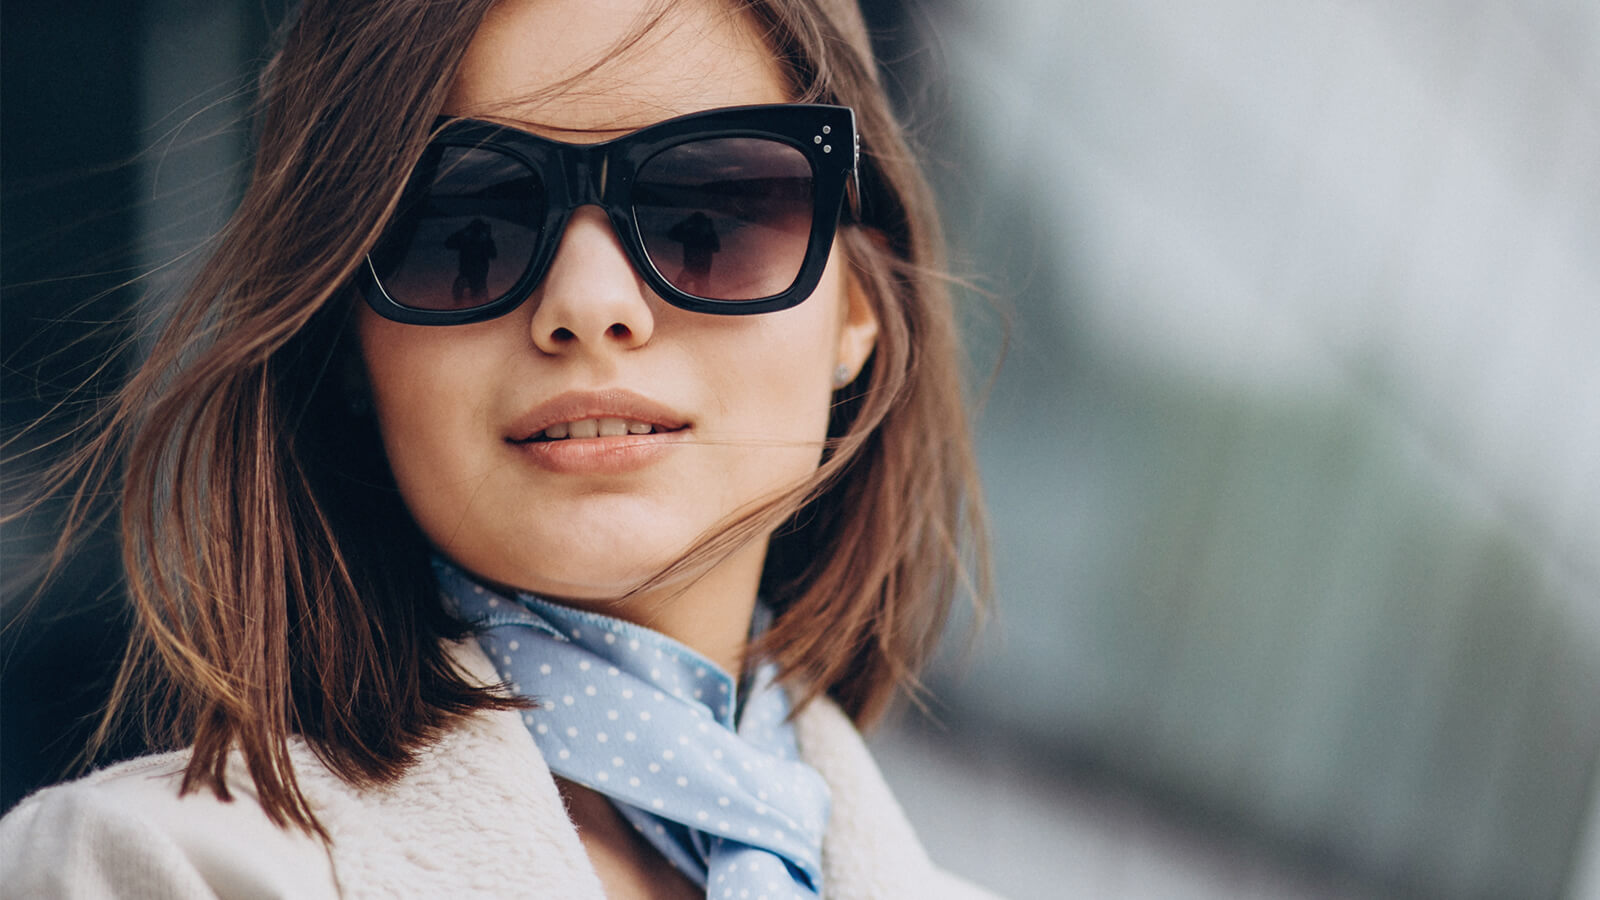 The best black sunglasses you'll want to own this summer